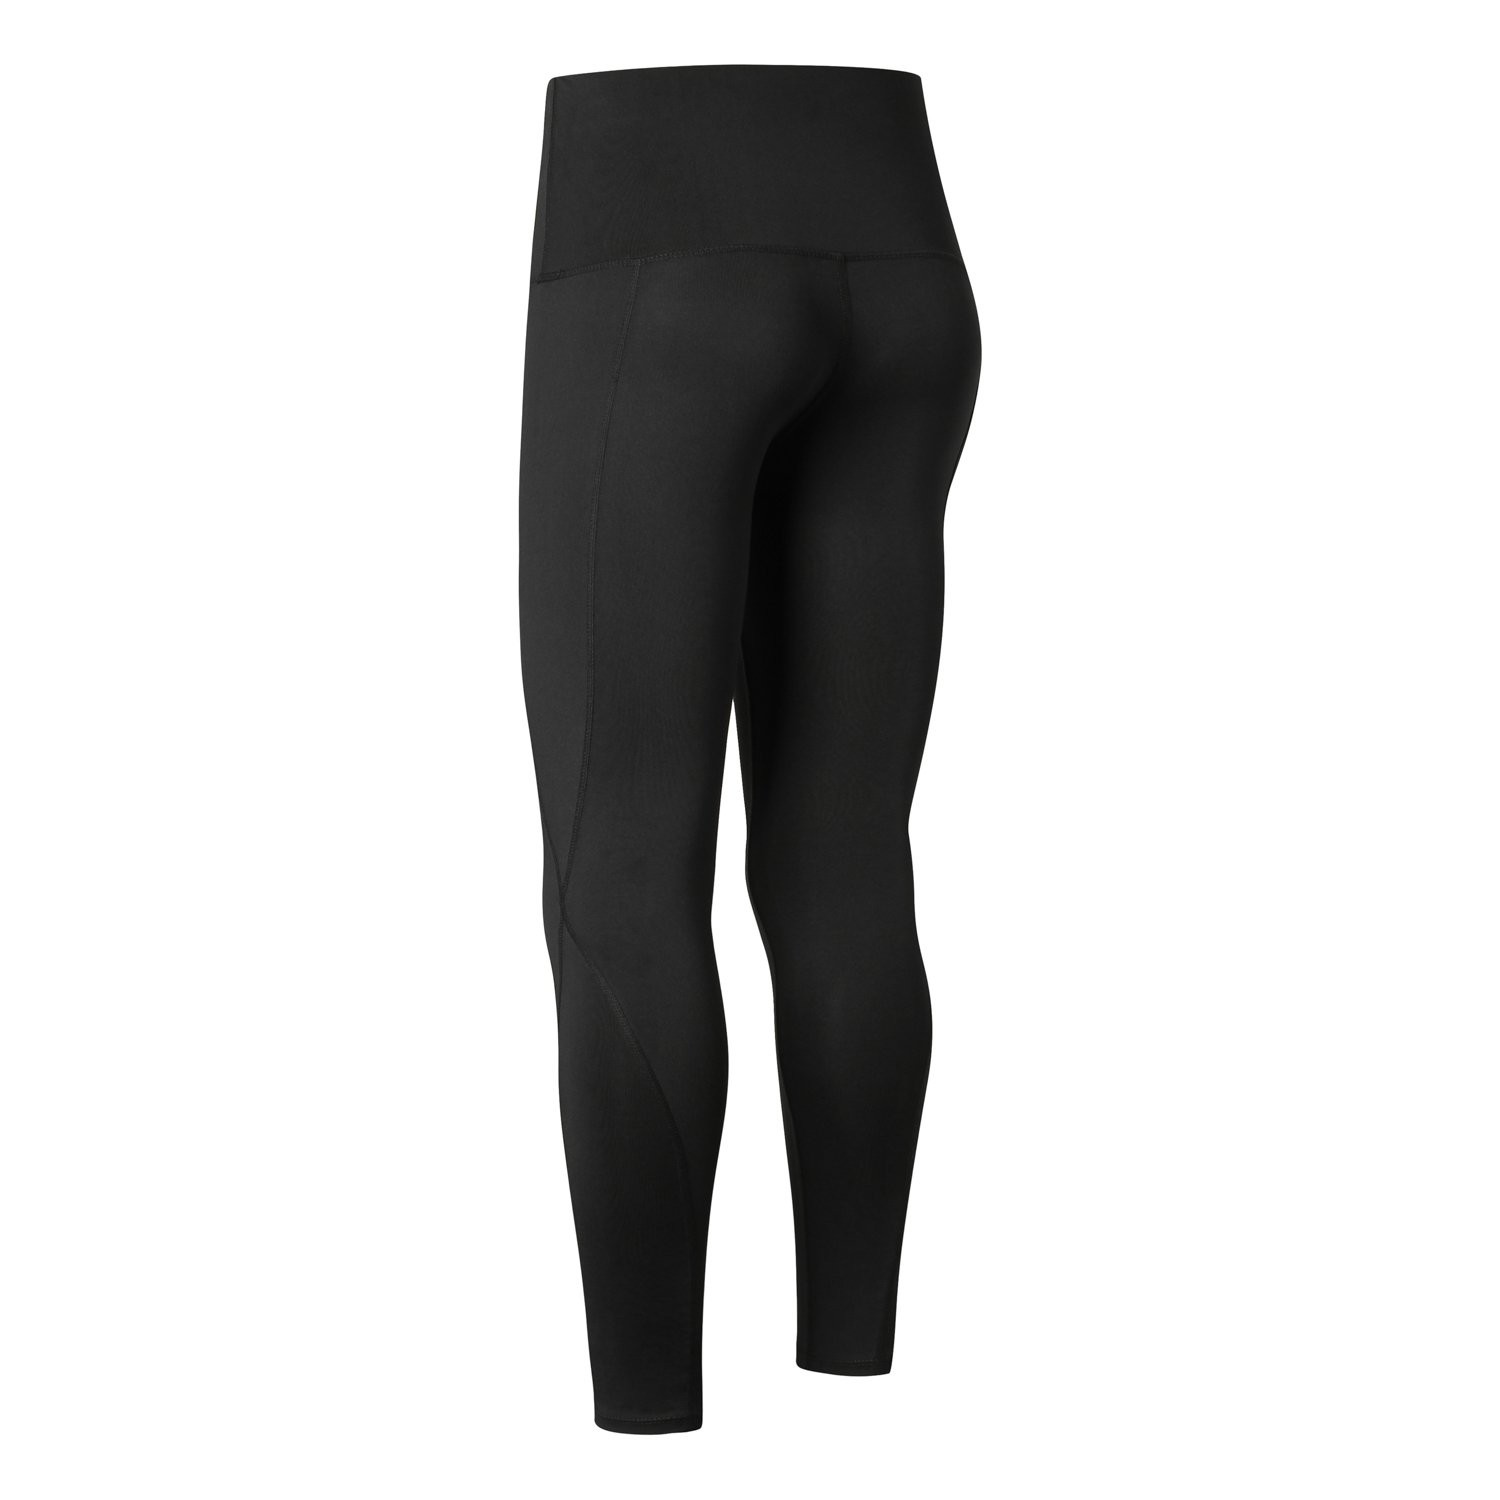 Antreween Women High Waisted Athletic Leggings with Pocket Running Sports Gym Workout 4 Way Stretch Yoga Pants (Black-One Side Pocket, L)